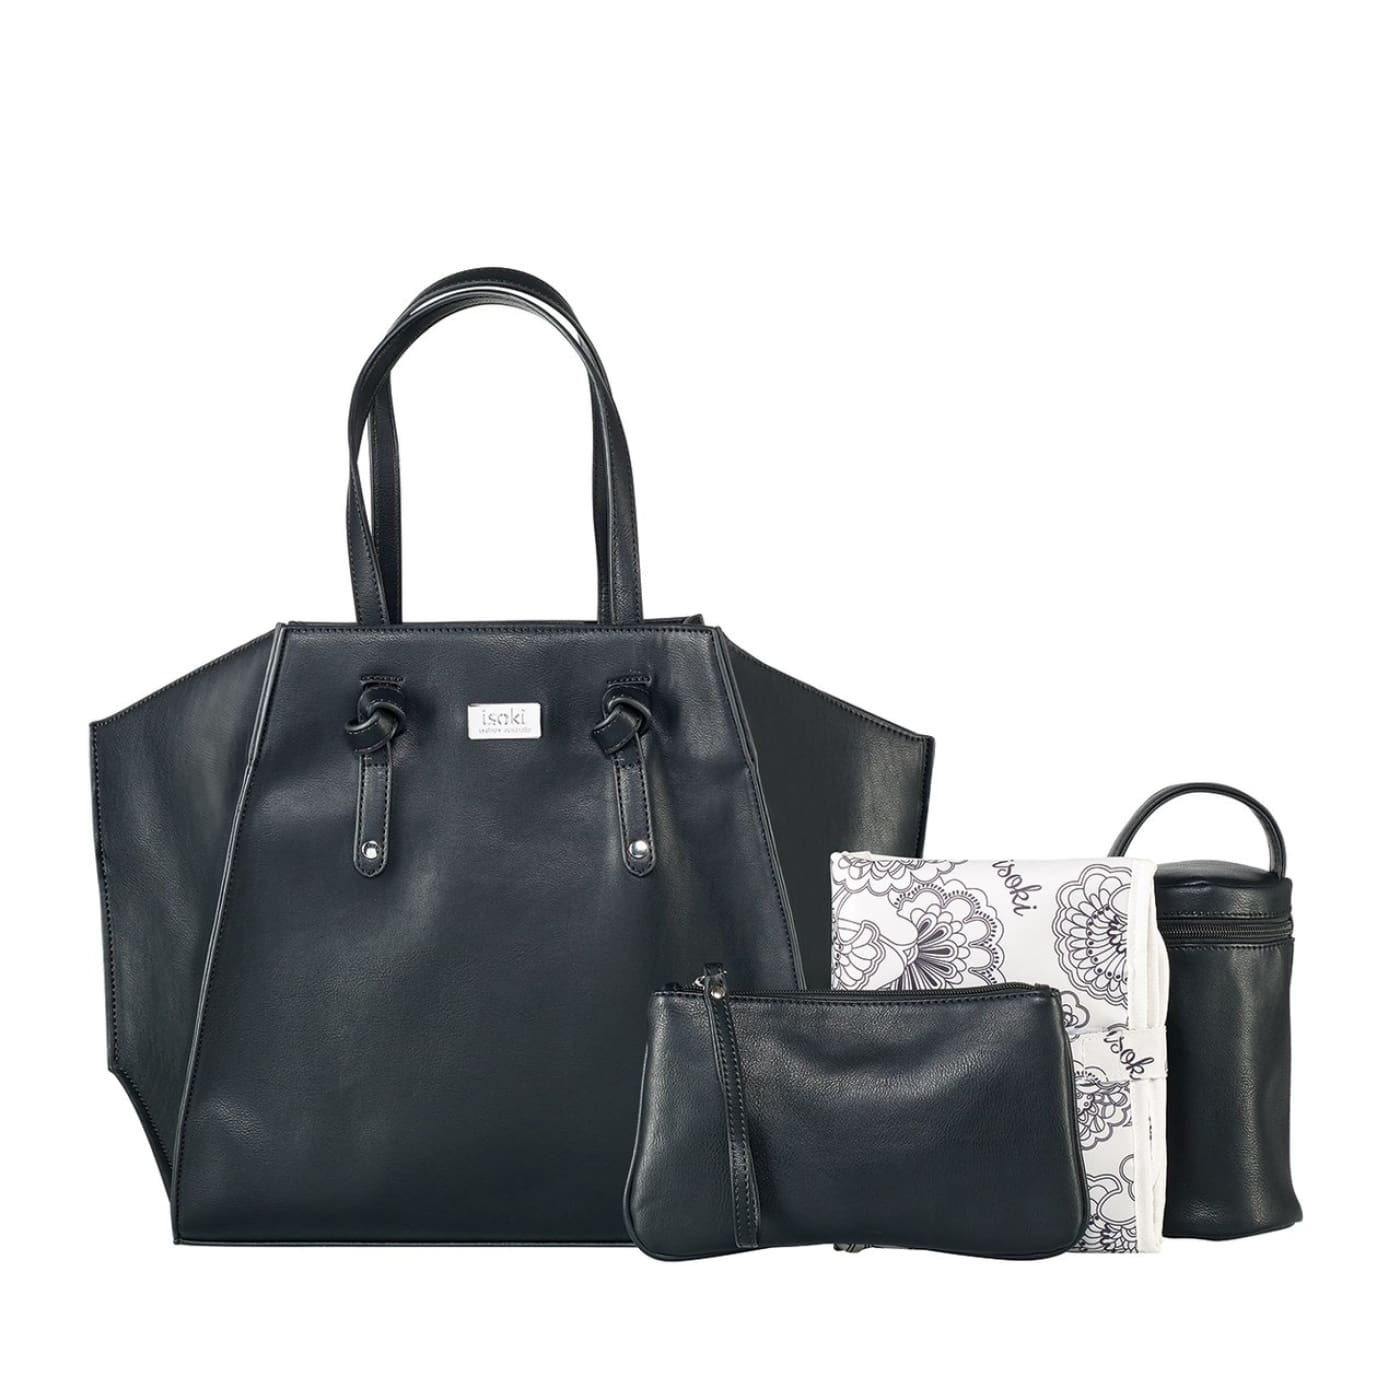 Isoki Easy Access Tote - Toorak Black - ON THE GO - NAPPY BAGS/LUGGAGE